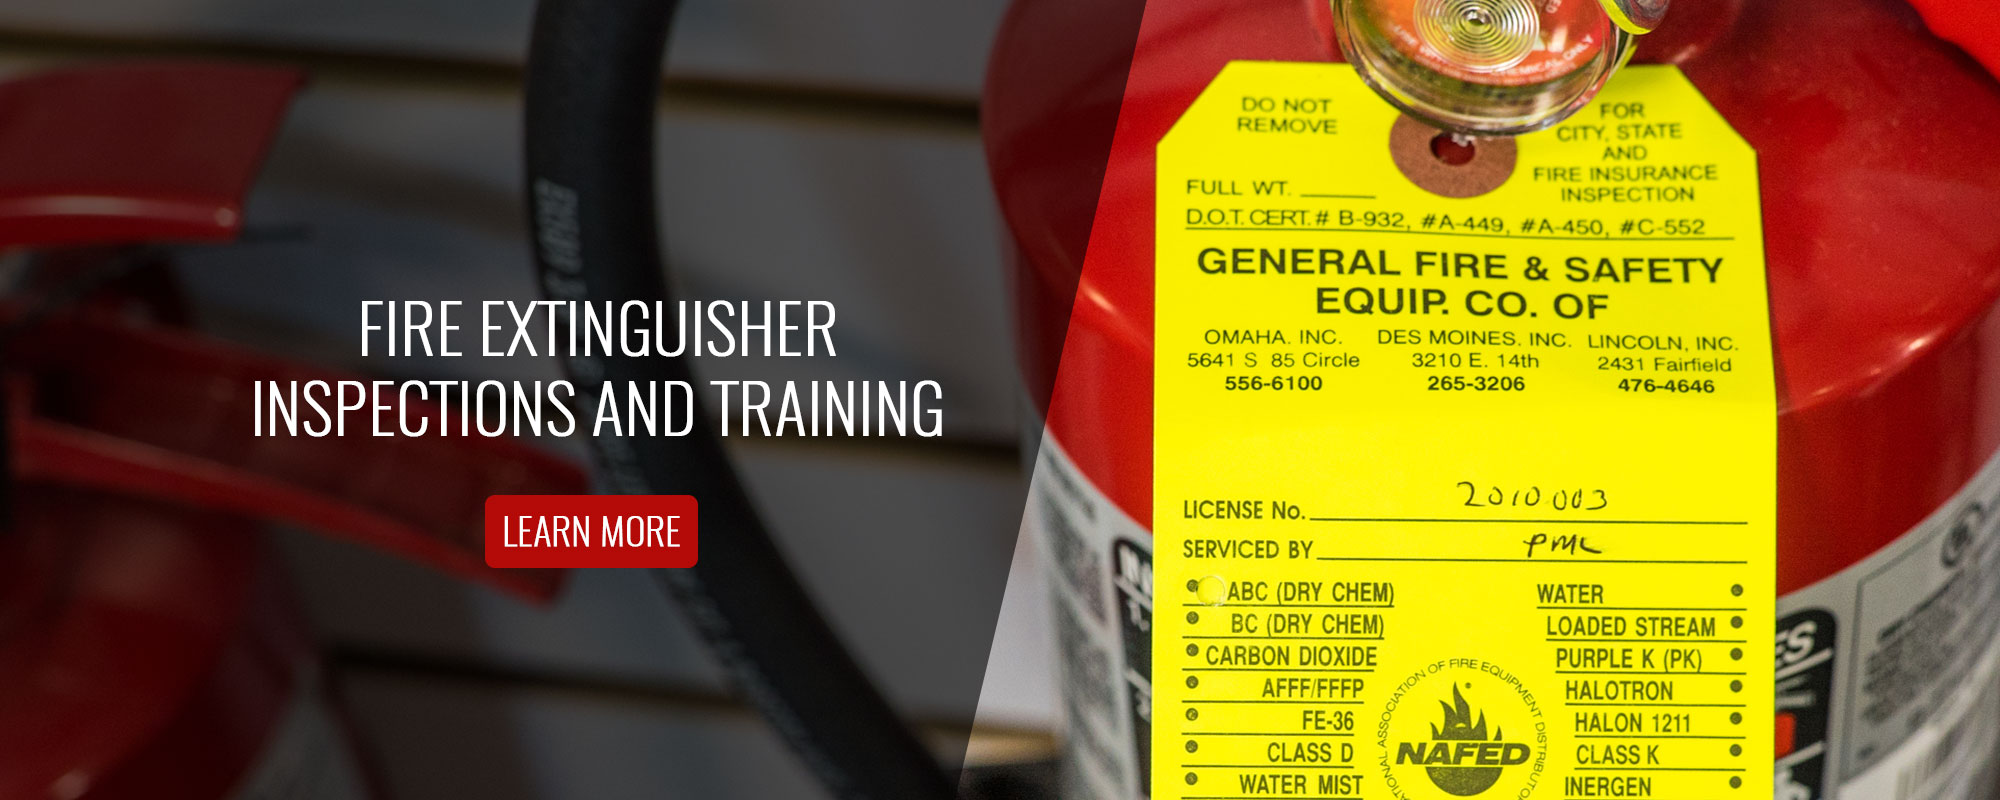 Fire Extinguisher Inspections and Training